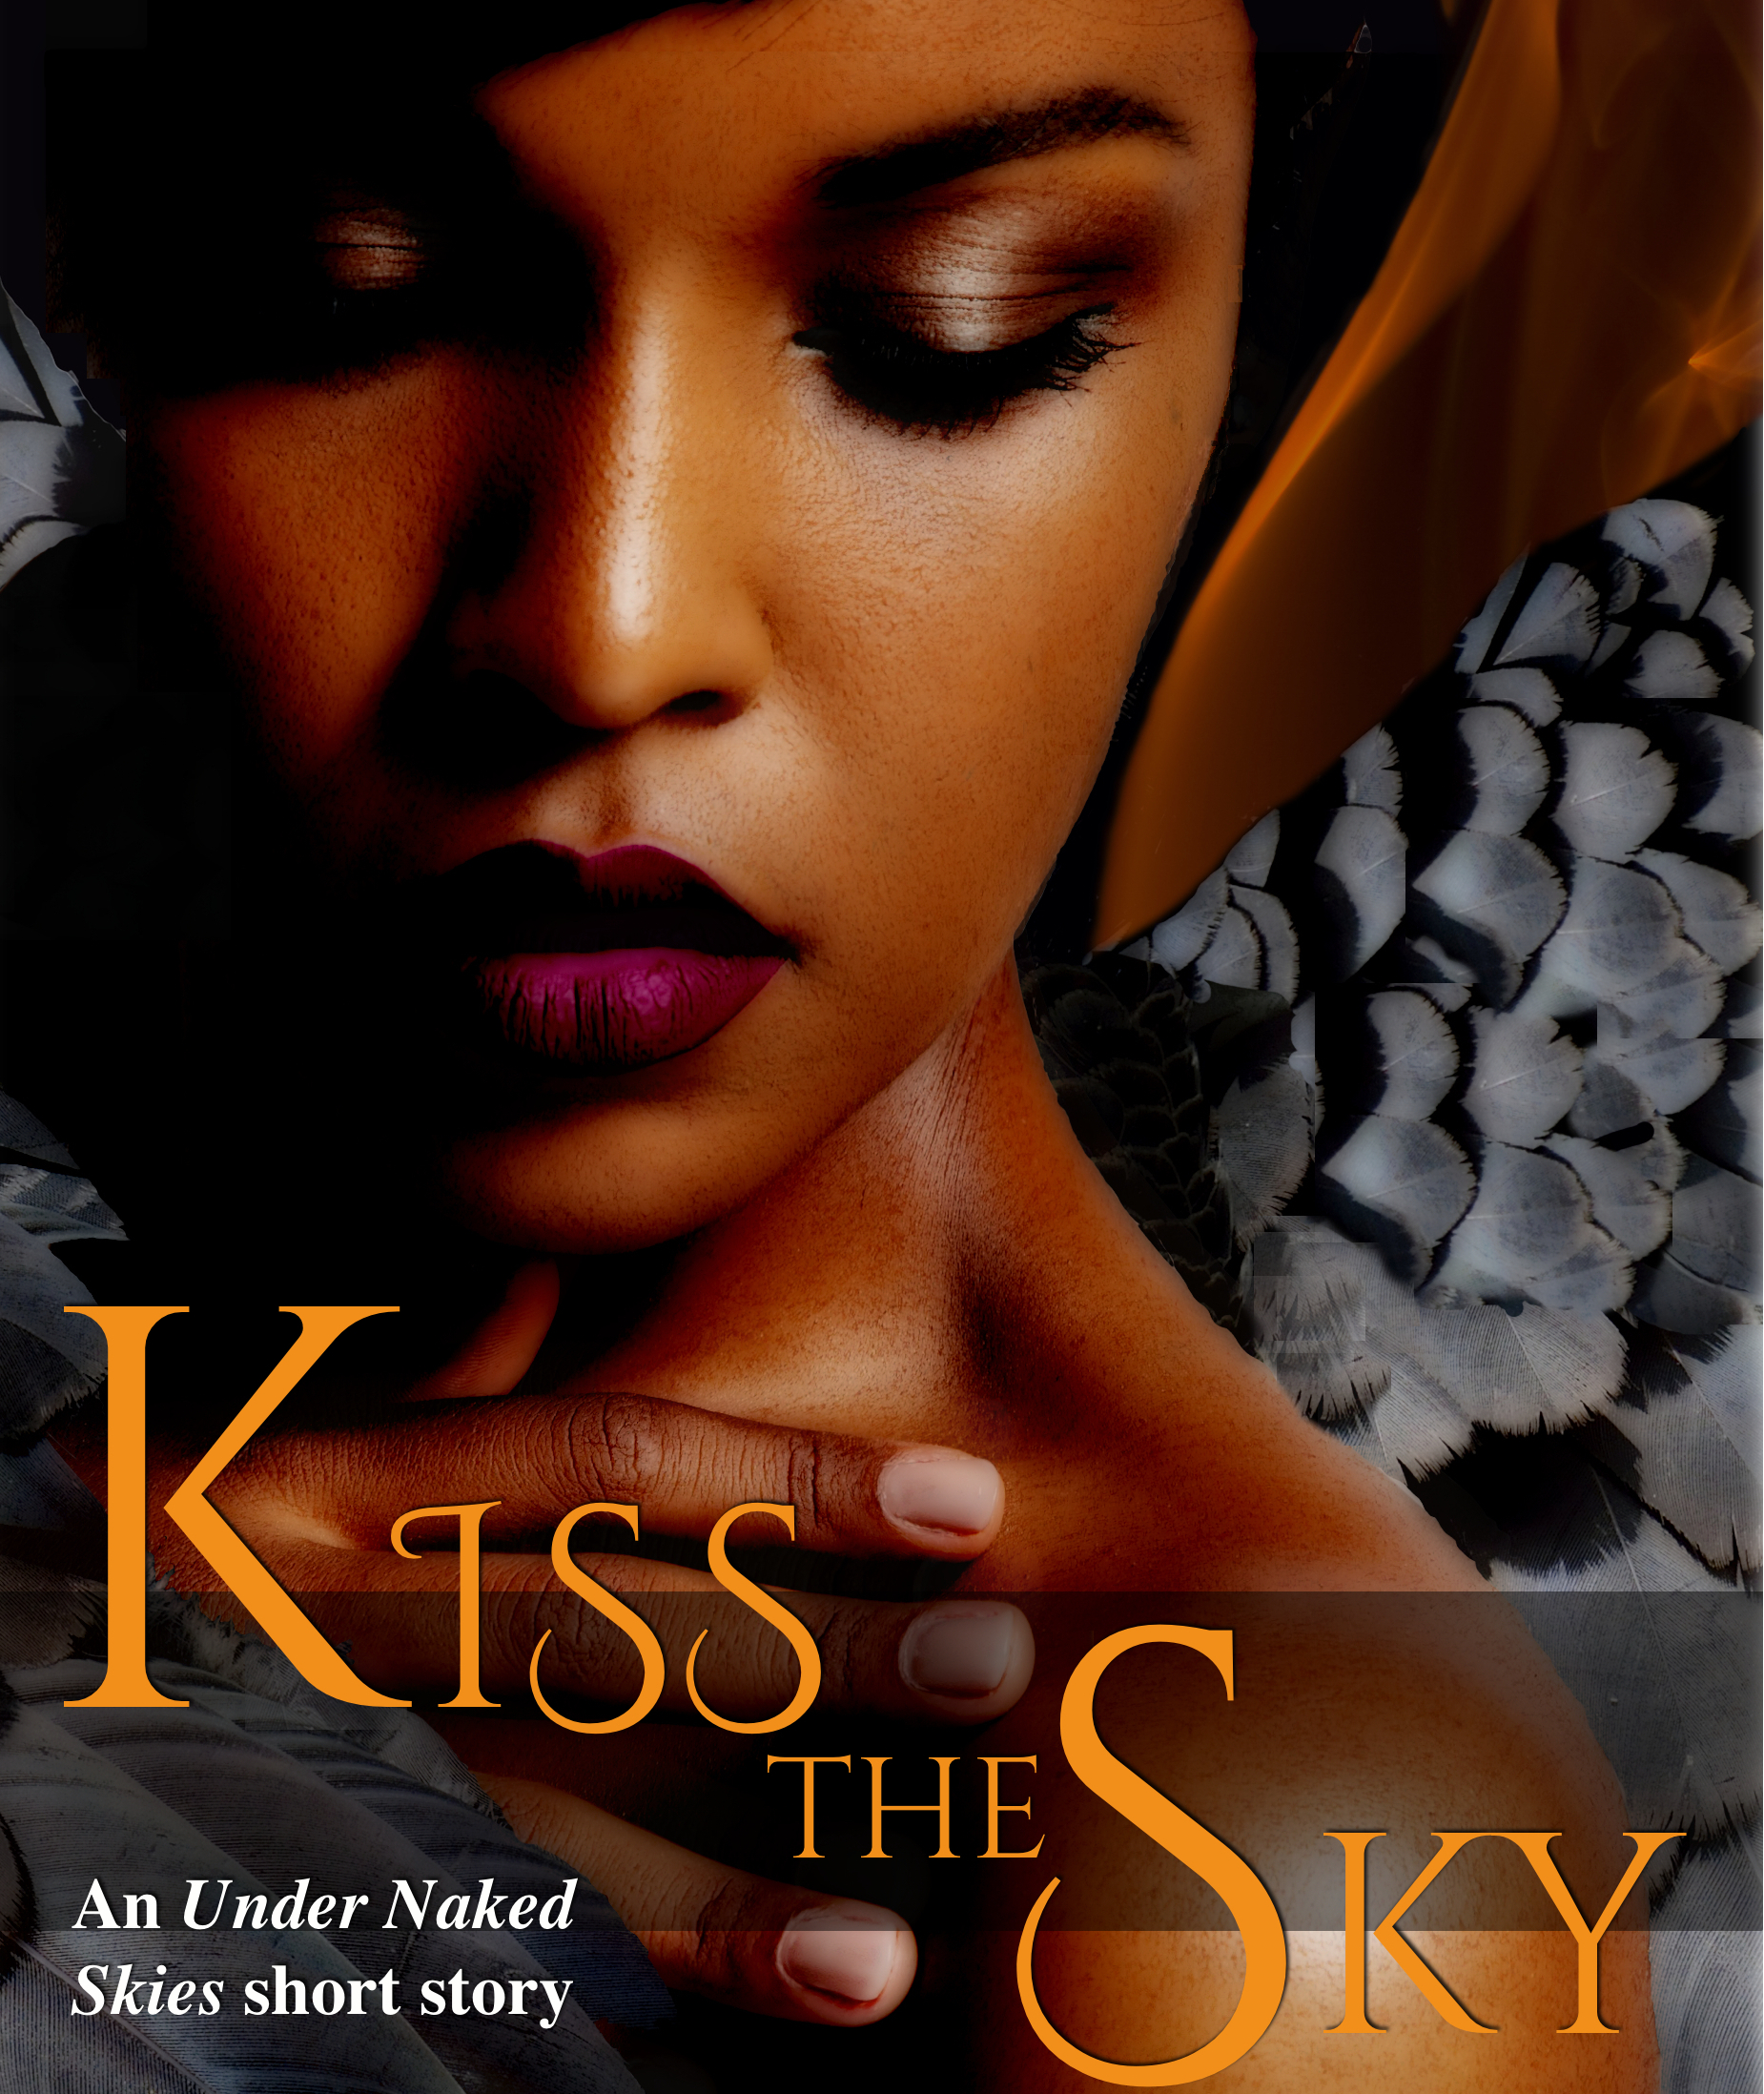 Kiss The Sky, an erotic short story available on amazon!